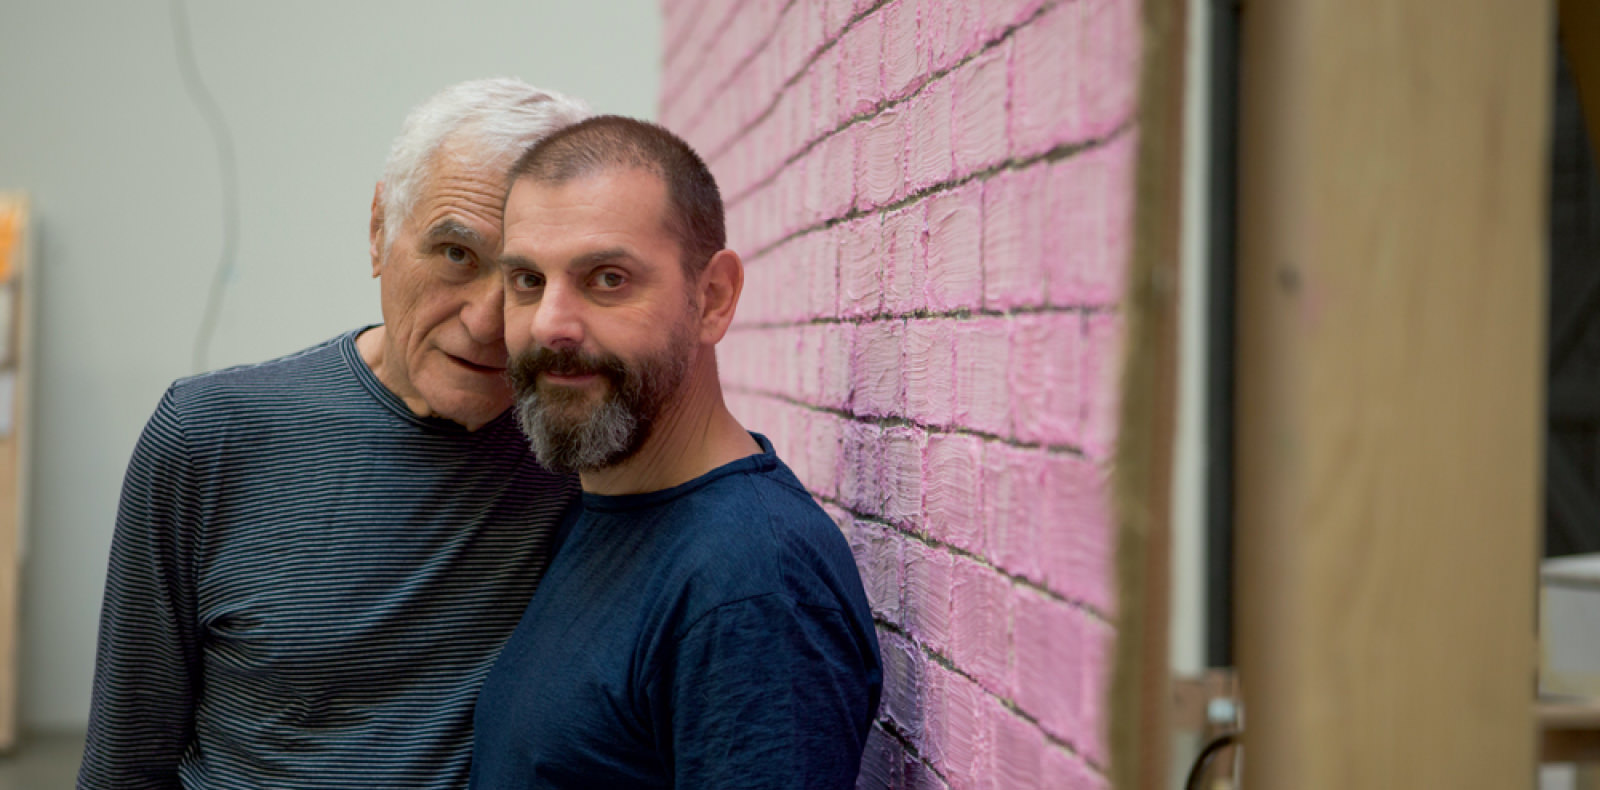 BEST OF 2015: artist Ugo Rondinone and the legendary poet John Giorno at the Palais de Tokyo in Paris